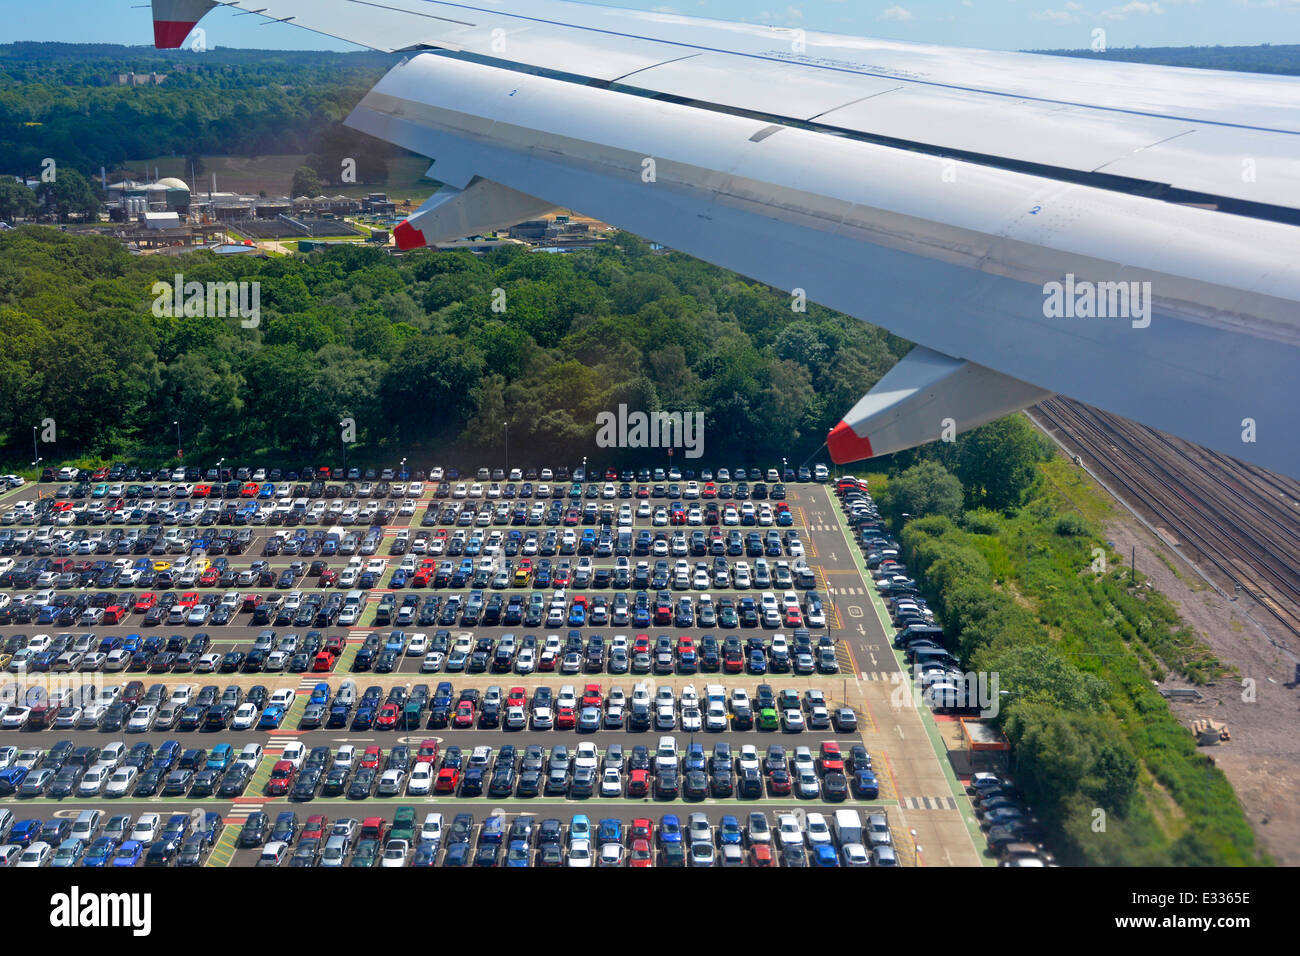 Aerial view of car park airport car parking seen from passenger jet decending towards Gatwick London Stock Photo